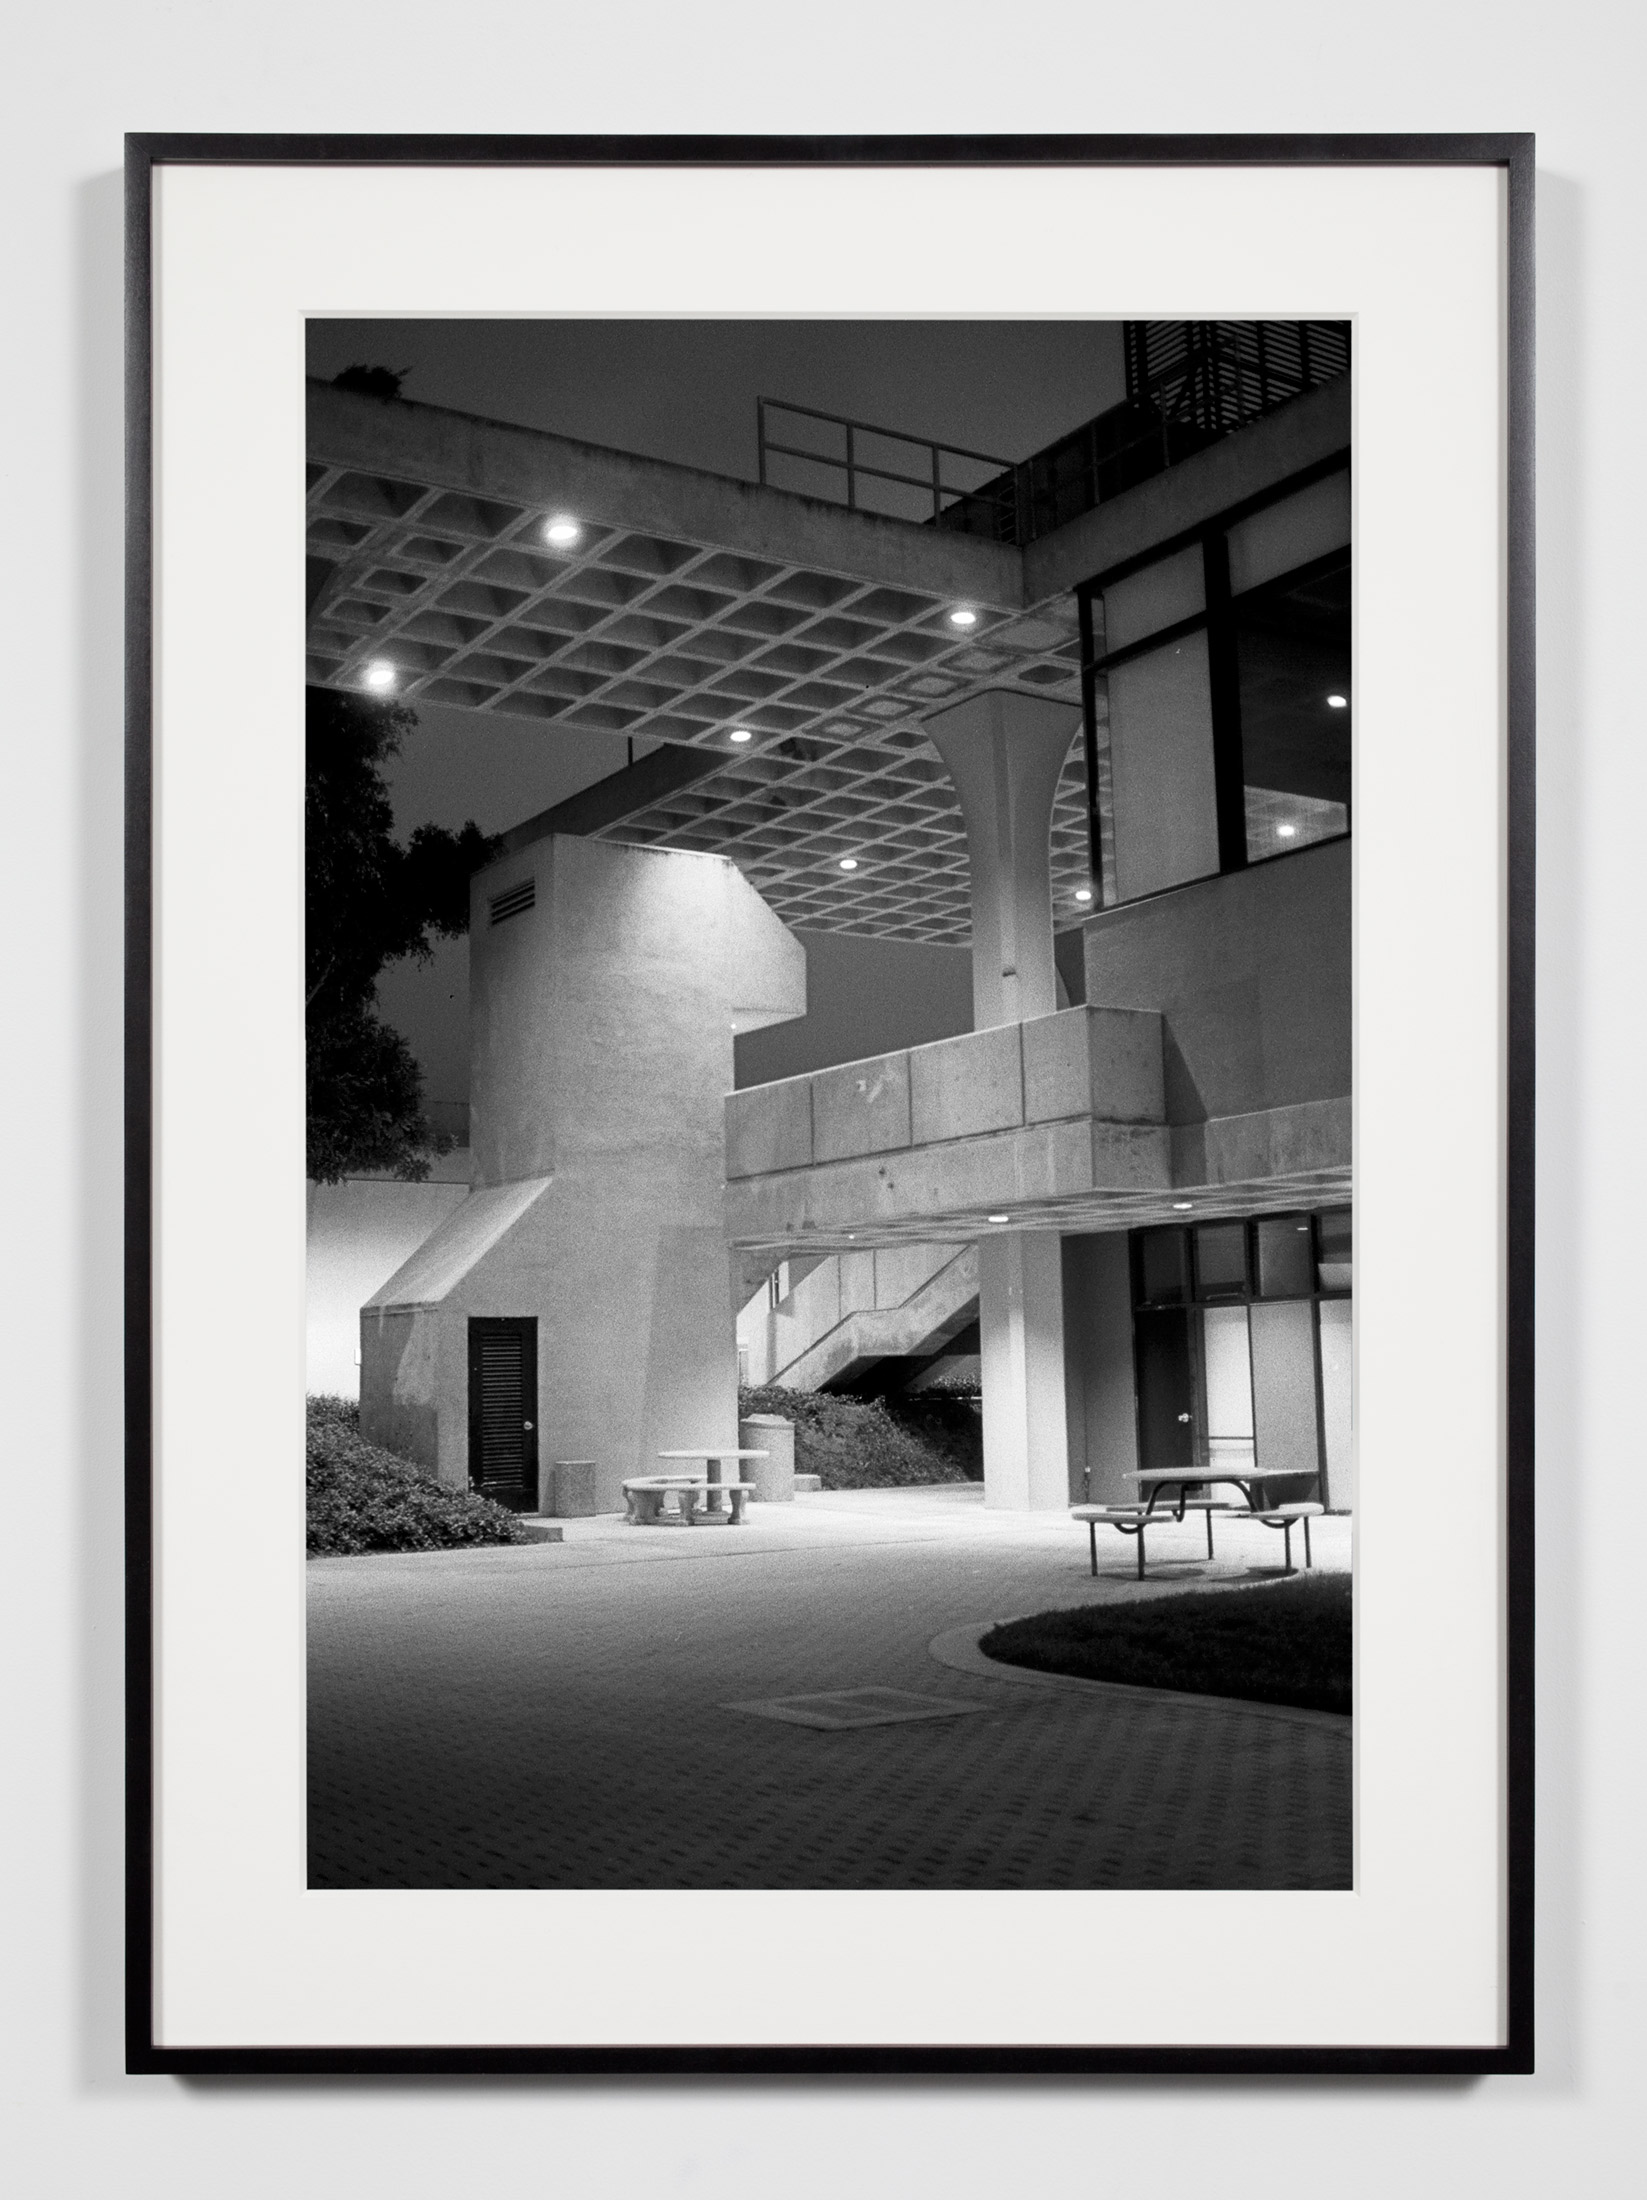 Claire Trevor School of the Arts (University of California Irvine), Irvine, California, July 17, 2008    2008   Epson Ultrachrome K3 archival ink jet print on Hahnemühle Photo Rag paper  36 3/8 x 26 3/8 inches   Industrial Portraits, 2008–